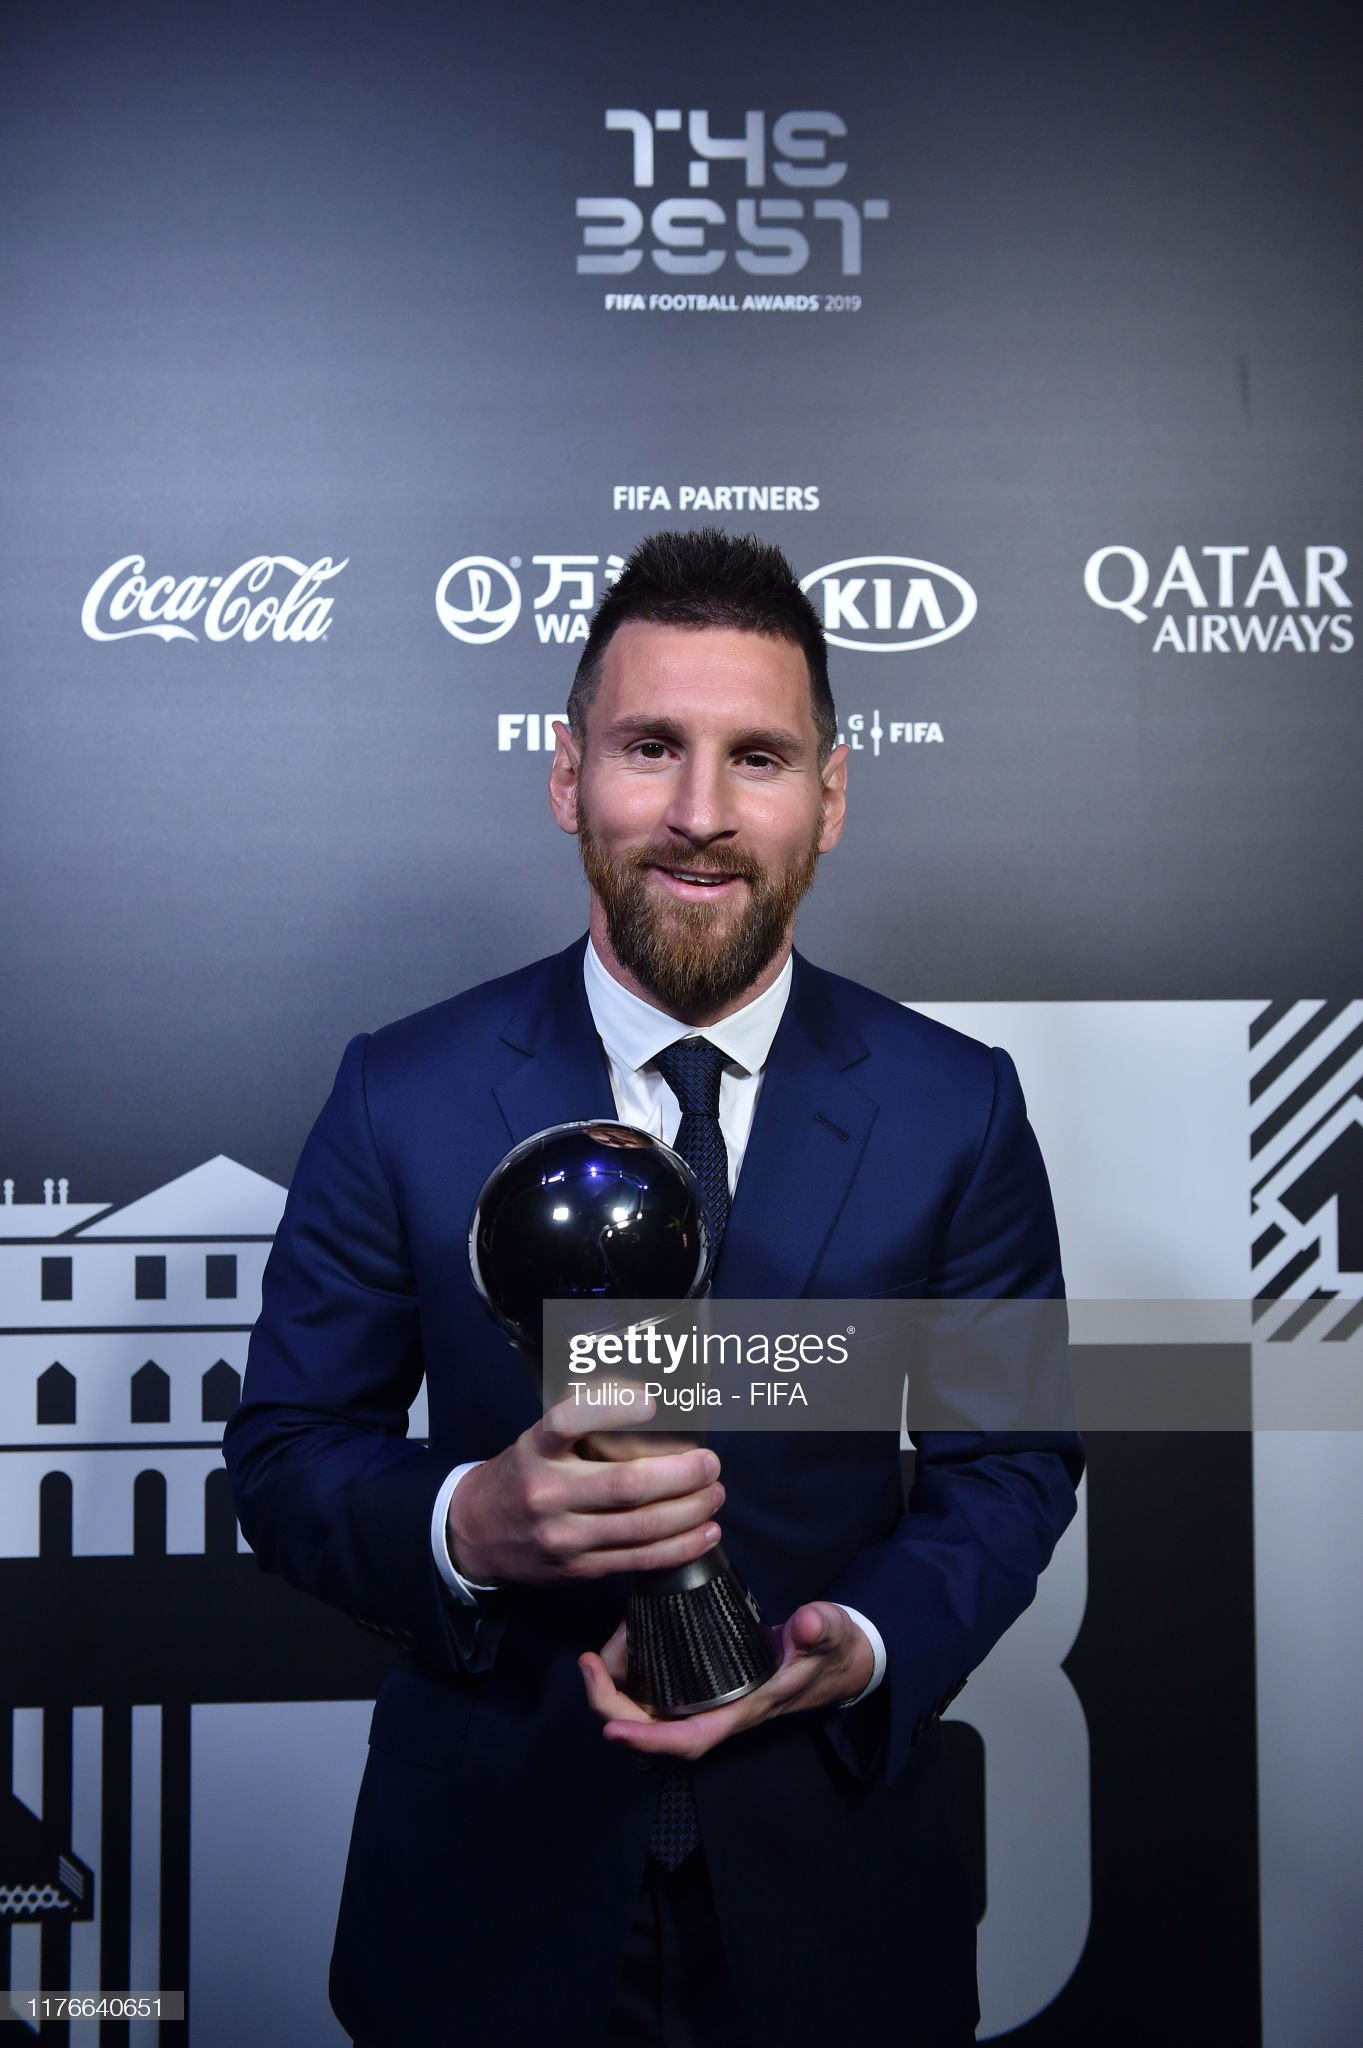 The Best FIFA Football Awards 2019 The-best-fifa-mens-player-award-winner-lionel-messi-of-fc-barcelona-picture-id1176640651?s=2048x2048